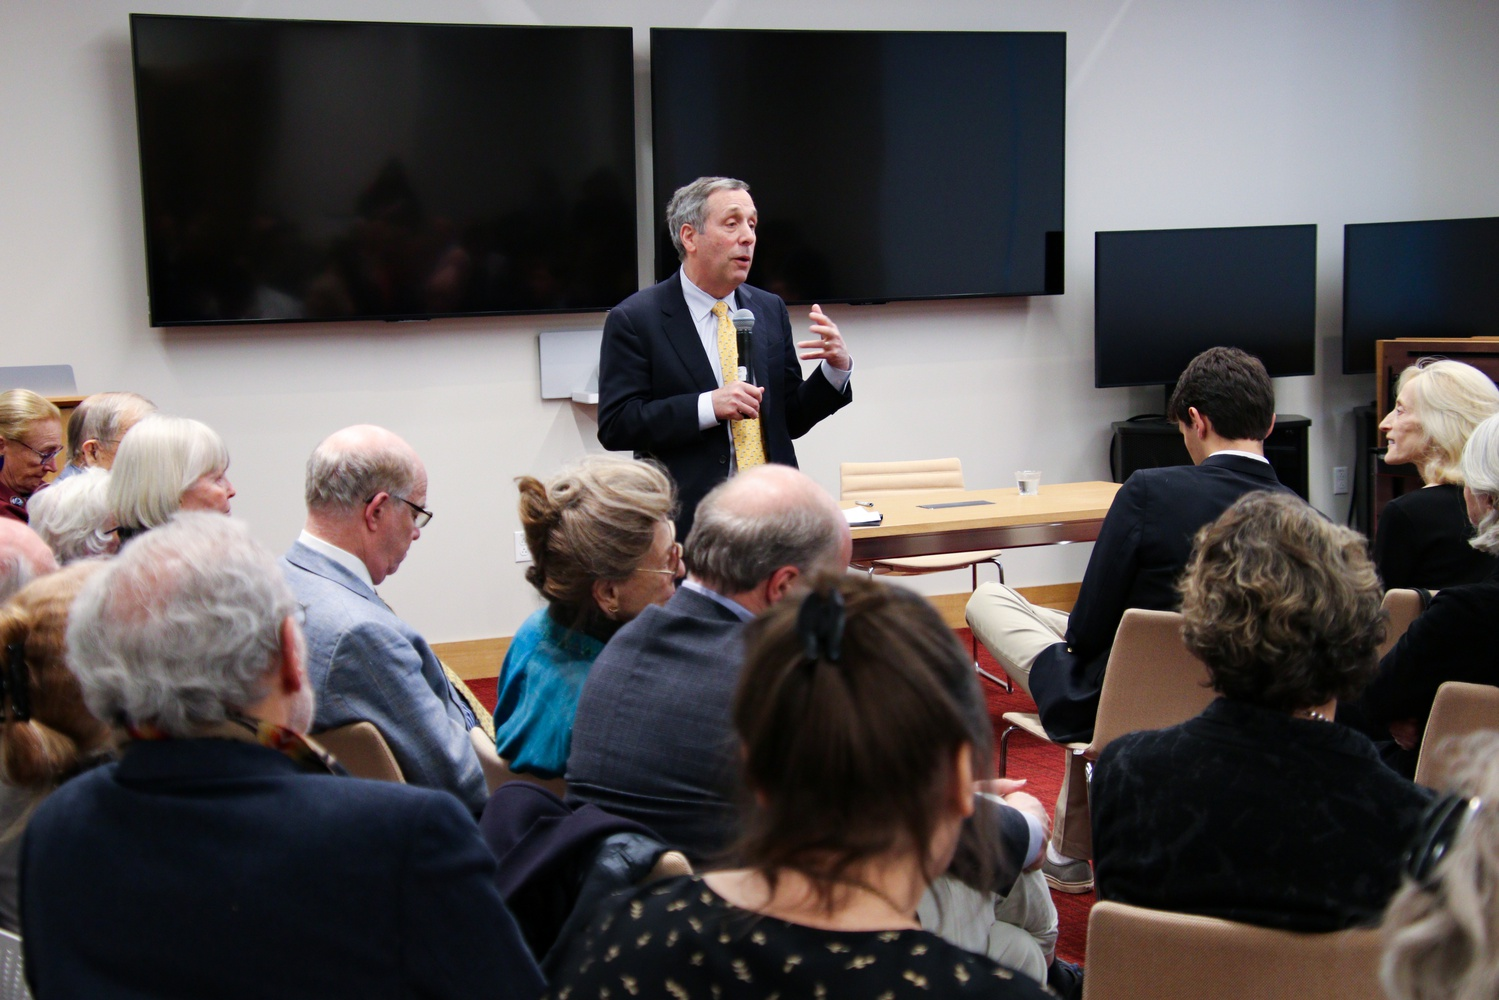 Following the protest, the Institute of Politics event was relocated to a Harvard Kennedy School classroom, where University President Lawrence S. Bacow responded to audience questions about the role of higher education in creating economic opportunity.